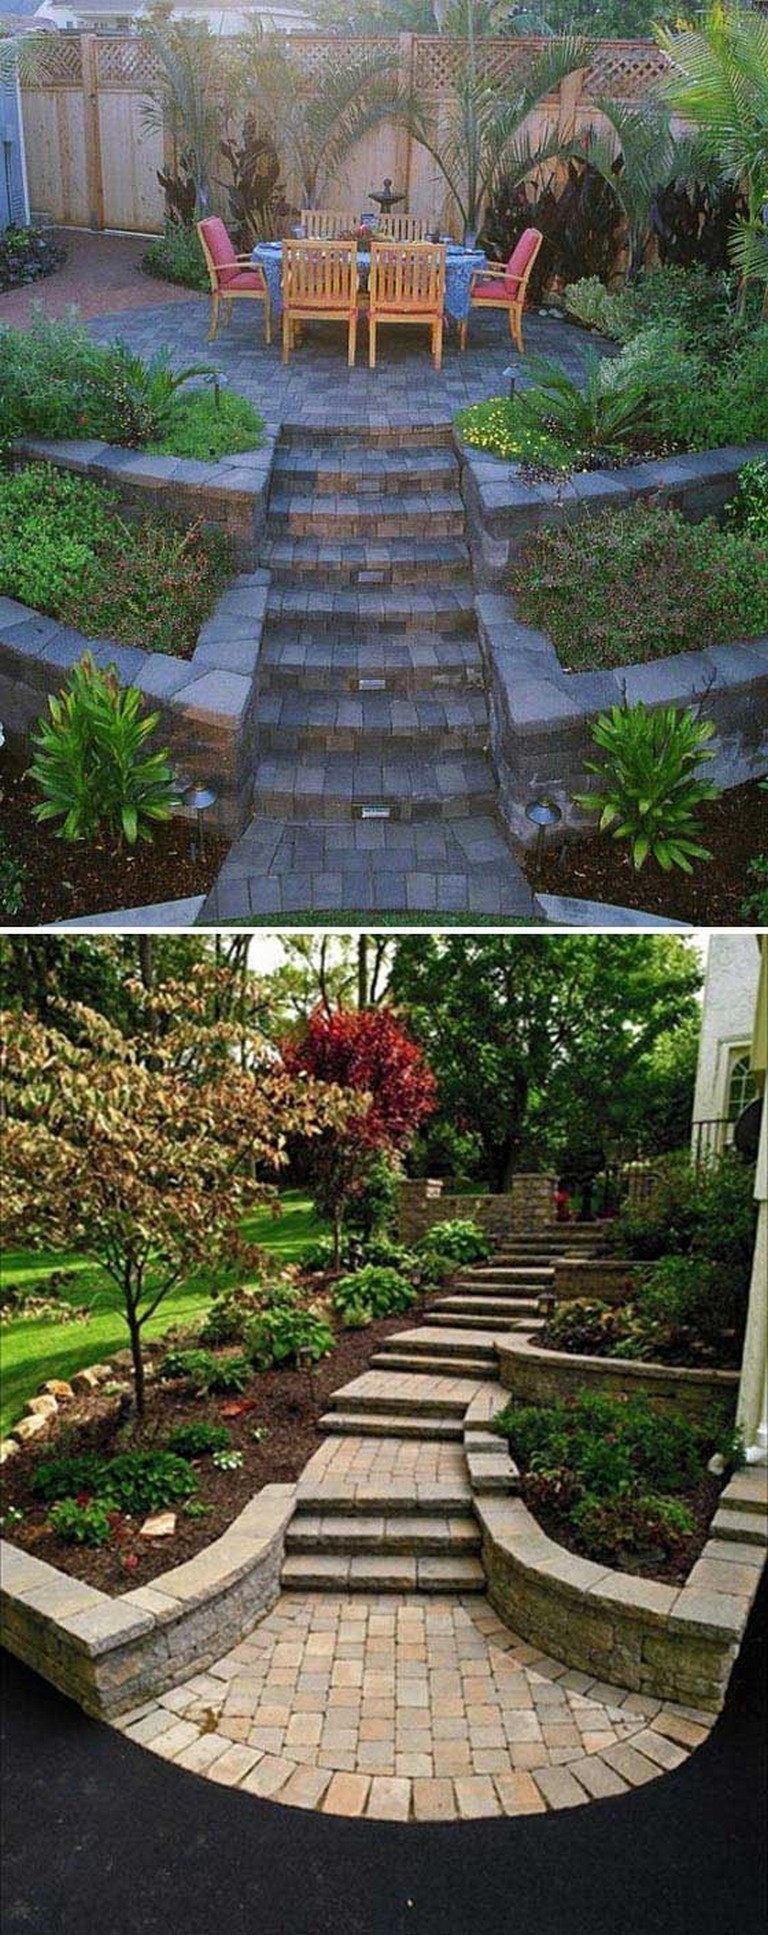 Small Backyard Landscaping Ideas on A Budget | Sloped ... on Small Sloped Backyard Ideas On A Budget id=69721